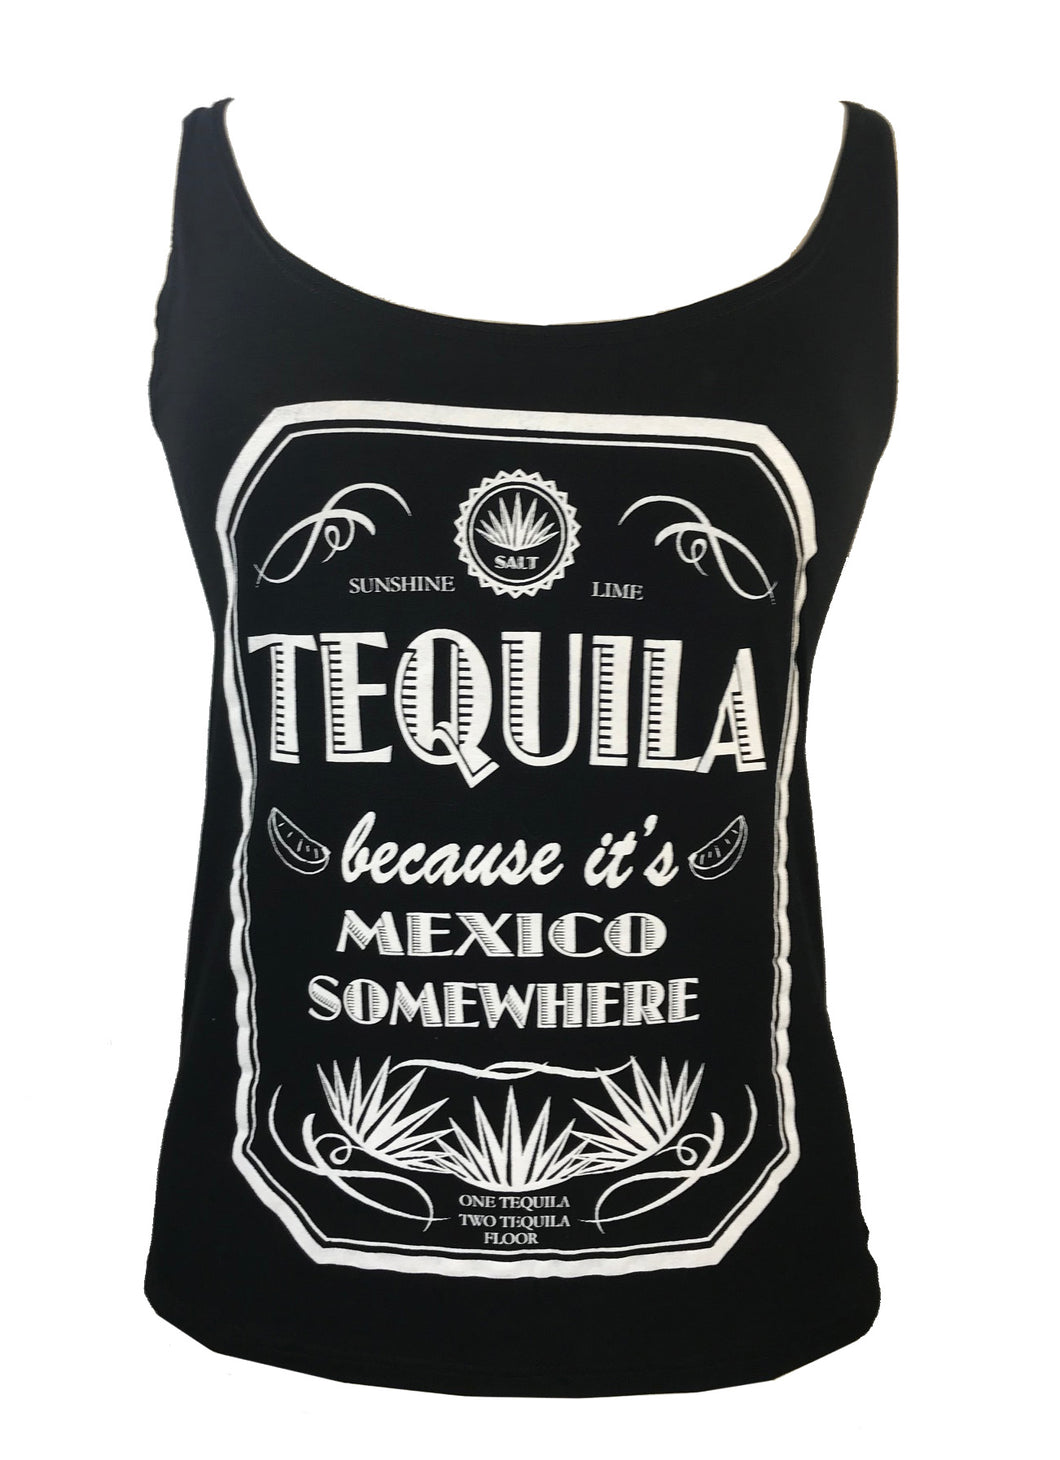 TEQUILA BECAUSE IT'S MEXICO SOMEWHERE TANK TOP - Trailsclothing.com